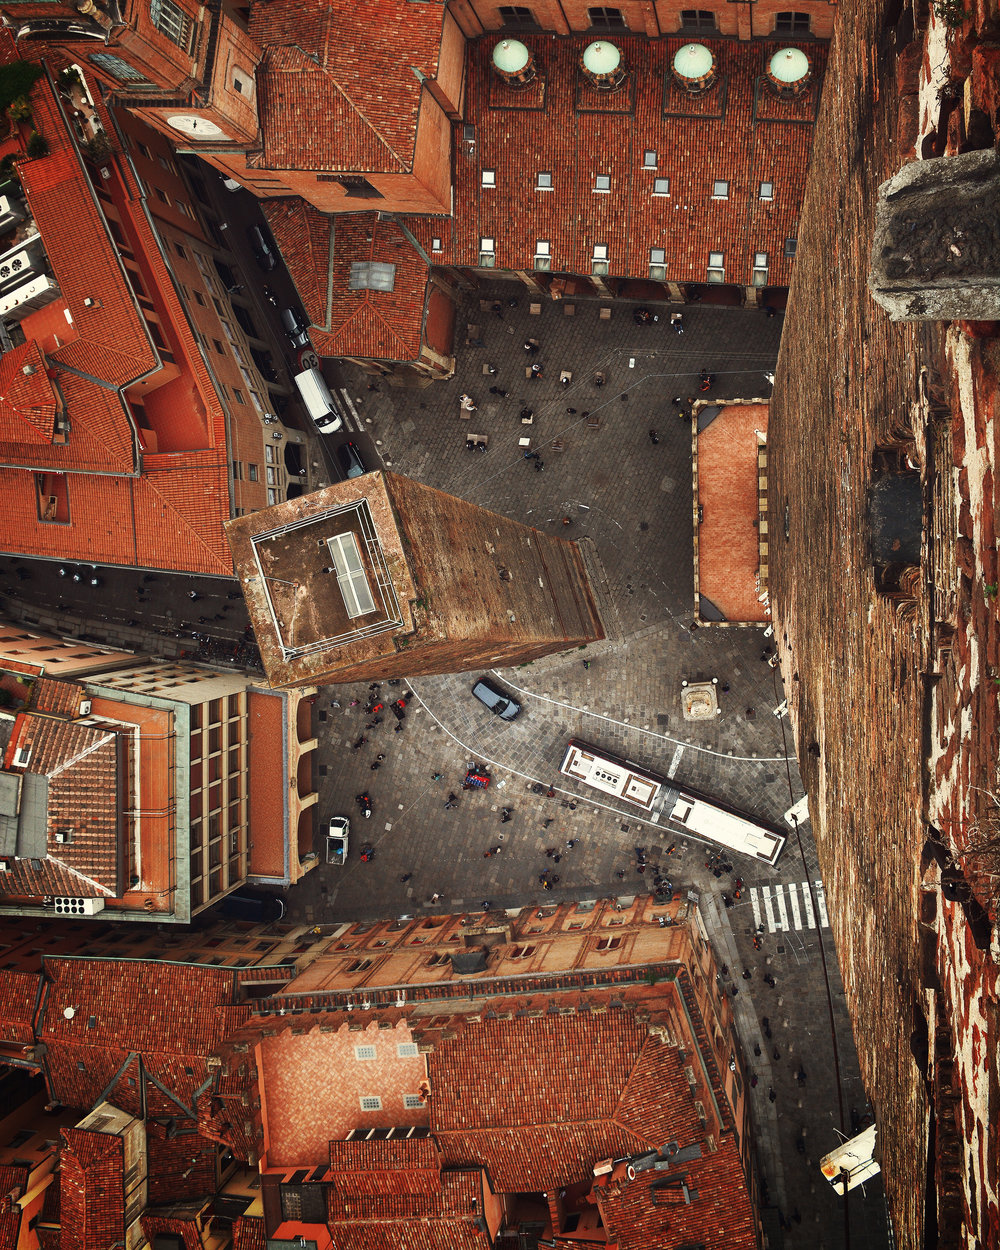 """Check out this aerial view of Bologna, Italy, taken atop Asinelli Tower. This tower was constructed between 1109 and 1119 and is the most prominent of the medieval """"Towers of Bologna,"""" at 319 feet (97.2 m) tall. Its companion tower, the Garisenda, can be seen at the center of the courtyard and is roughly 157 feet (48 m) tall.  44°29'39.5""""N, 11°20'48.5""""E  Source imagery: @bogdandada"""